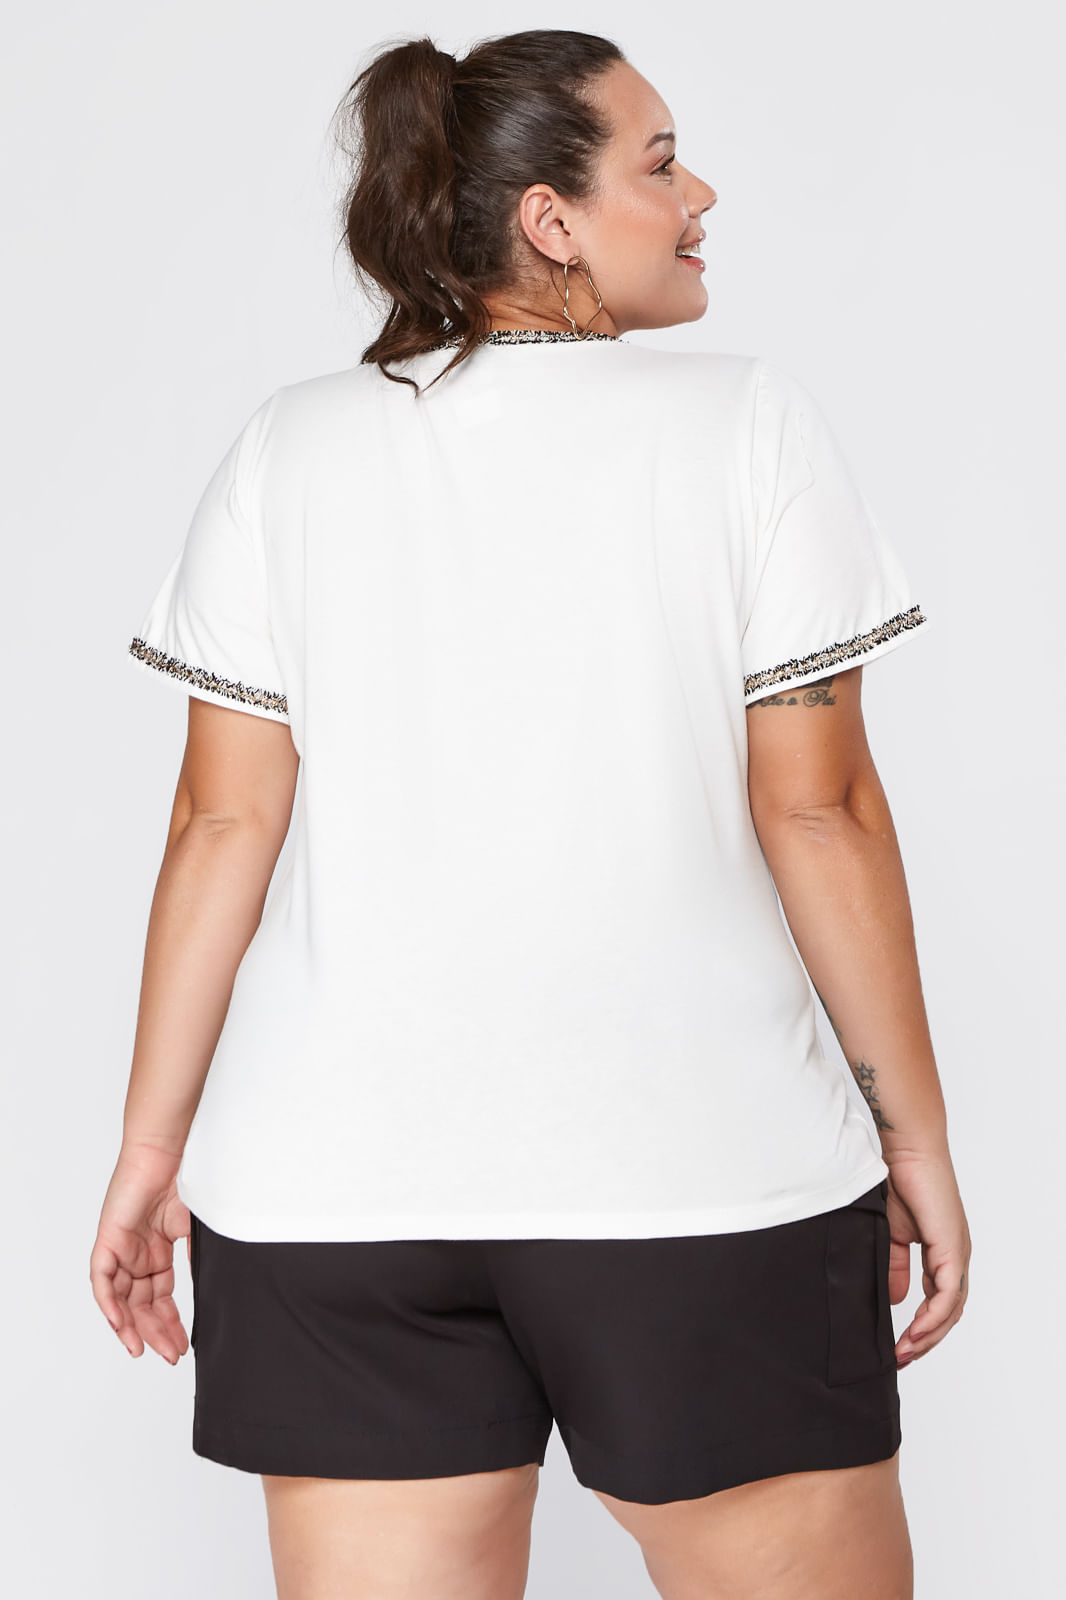 NWB240920_T-Shirt_Plus_Size_Life_Is_Pure_Off_White_4